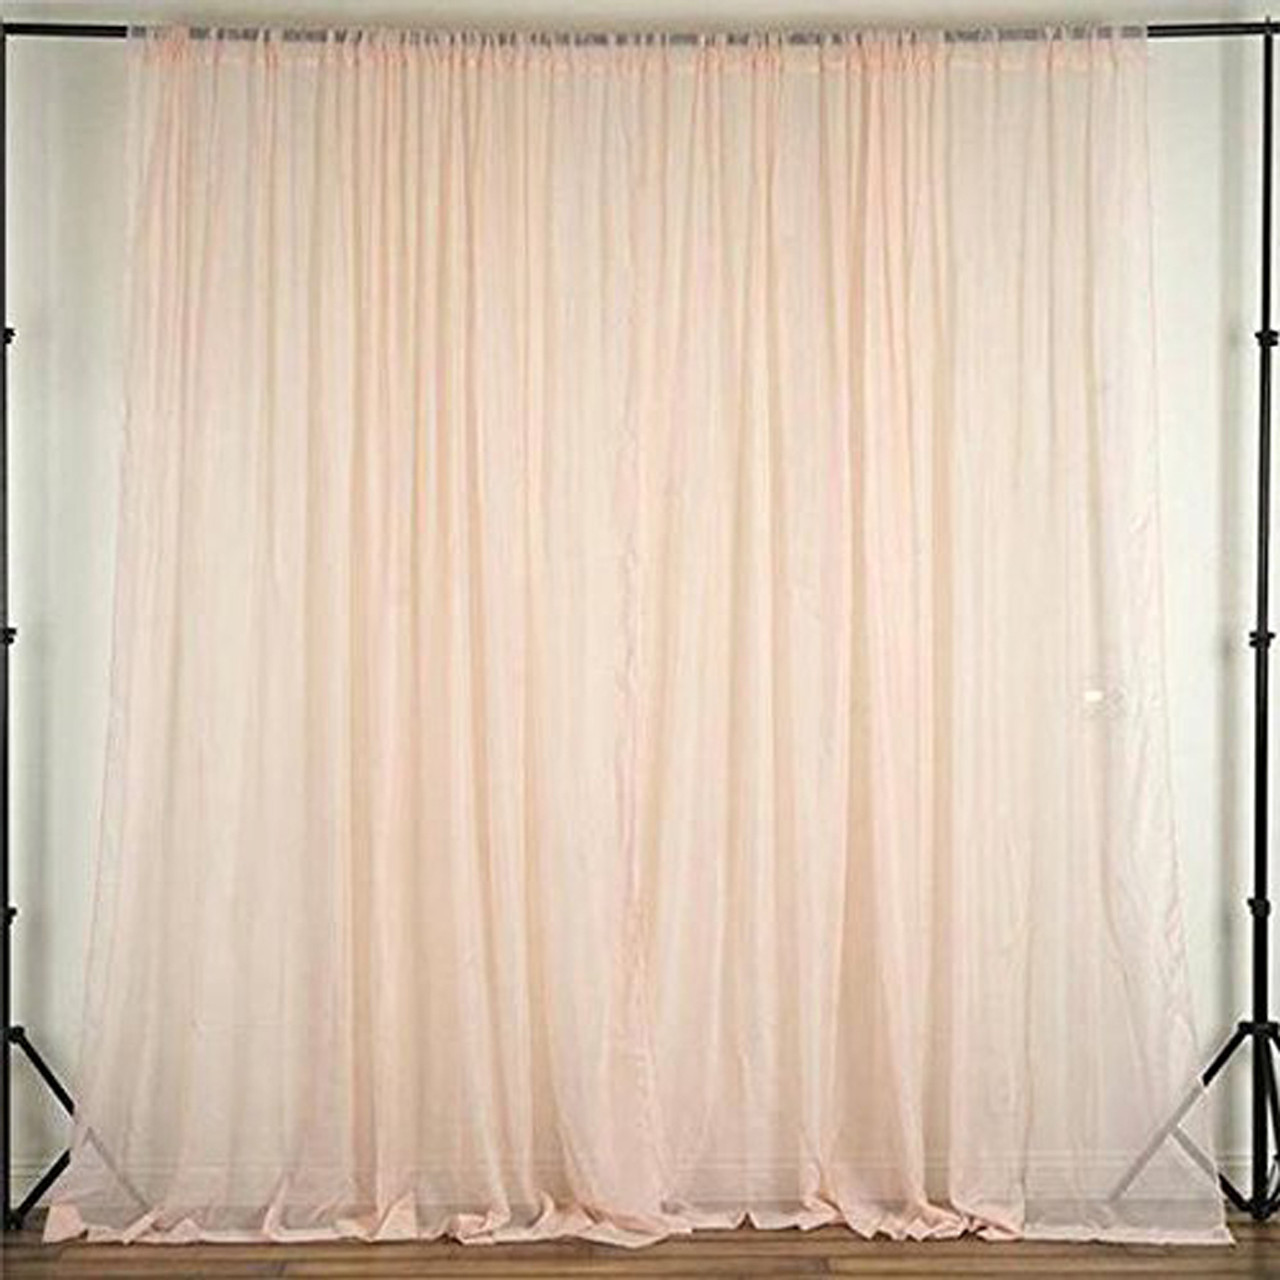 blush 120 wide 10ft wide sheer voile drape panels select from 6ft to 50ft length